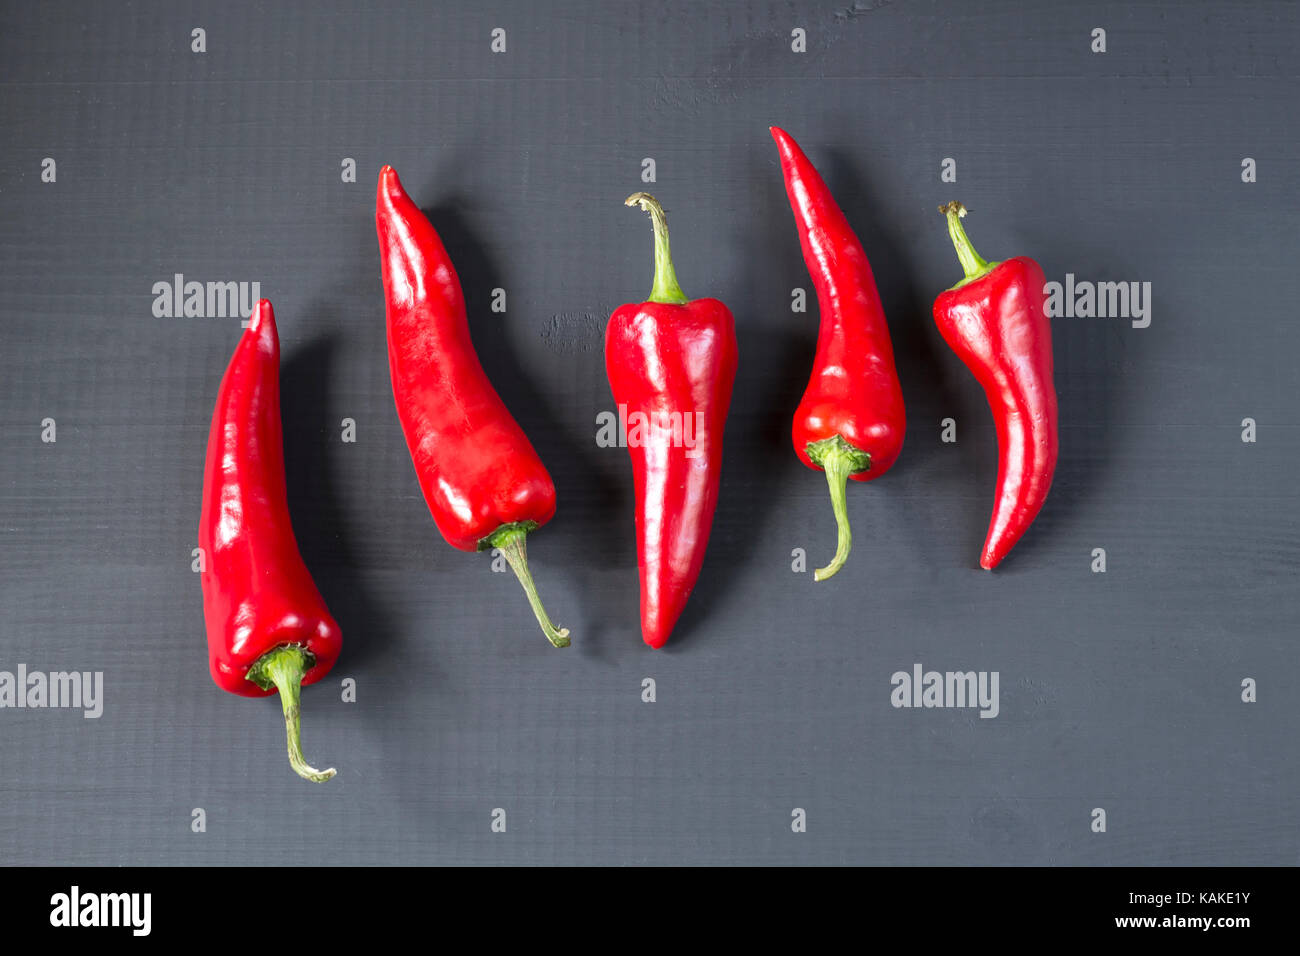 cayenne chilli peppers on wooden background - Stock Image